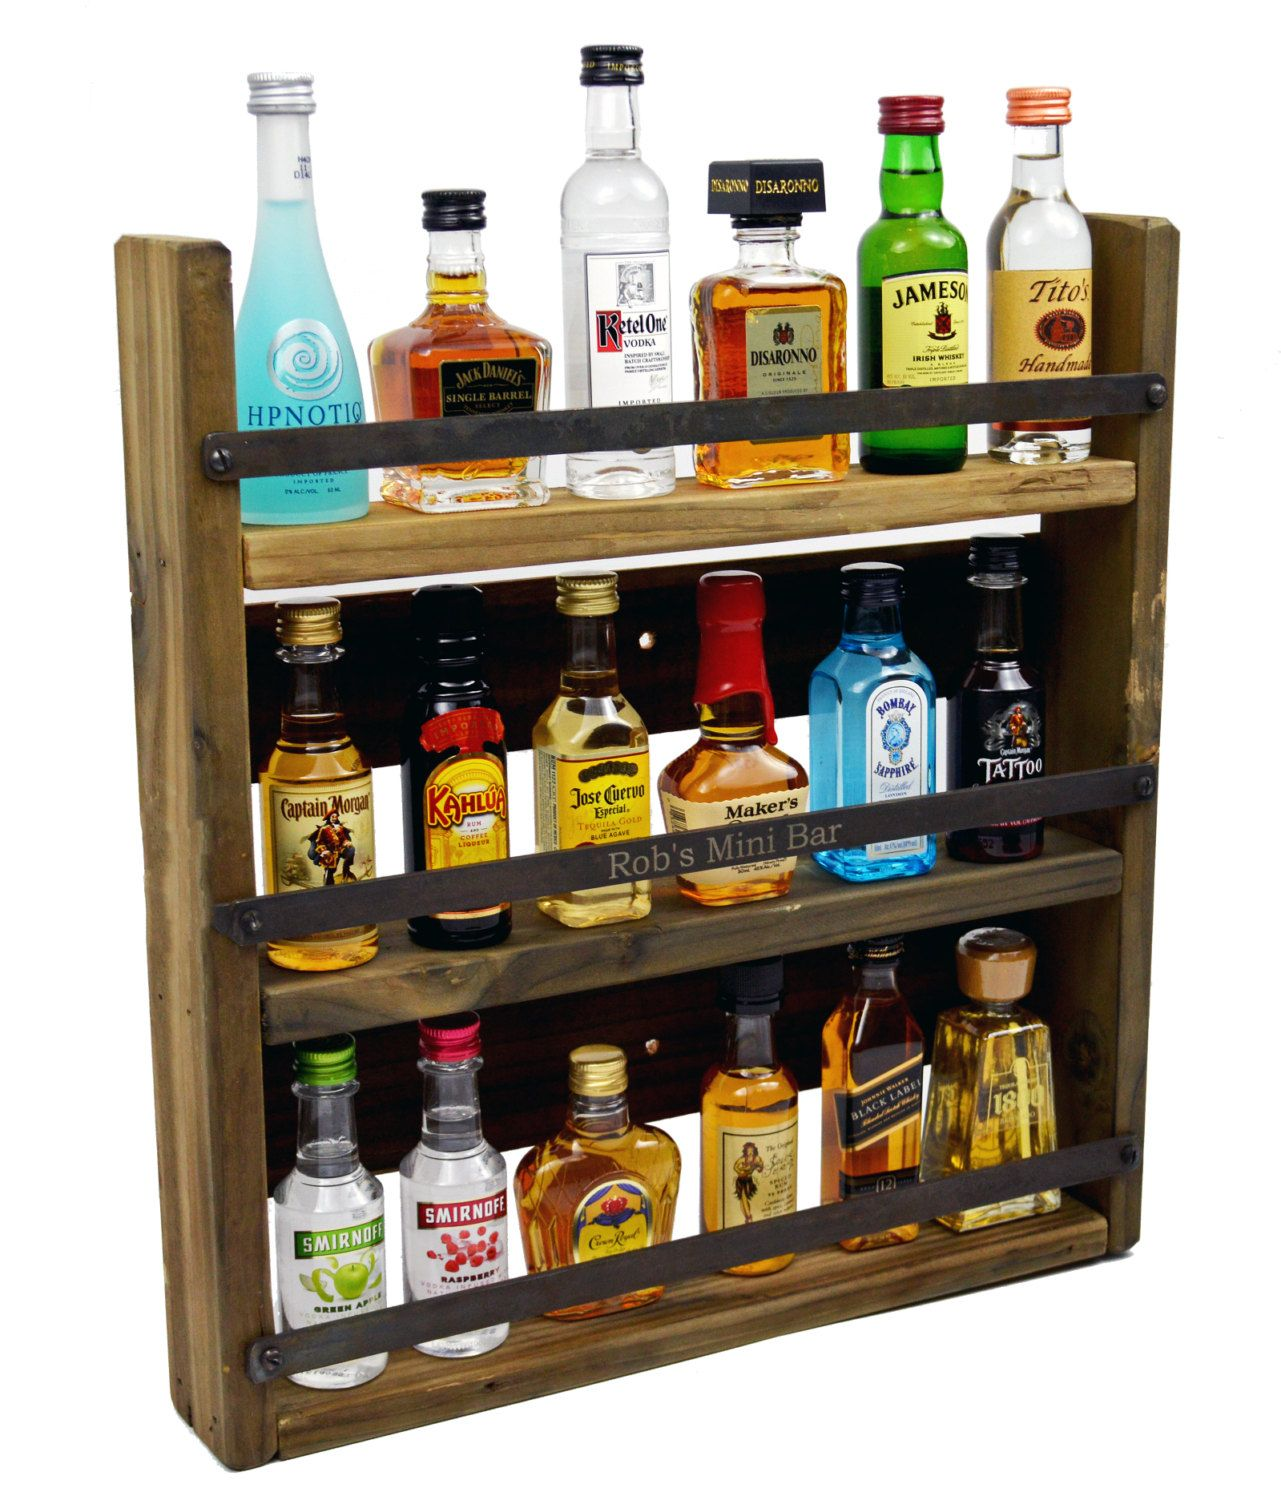 We Found A Mini Bar That Holds Our Favorite Miniature Liquor